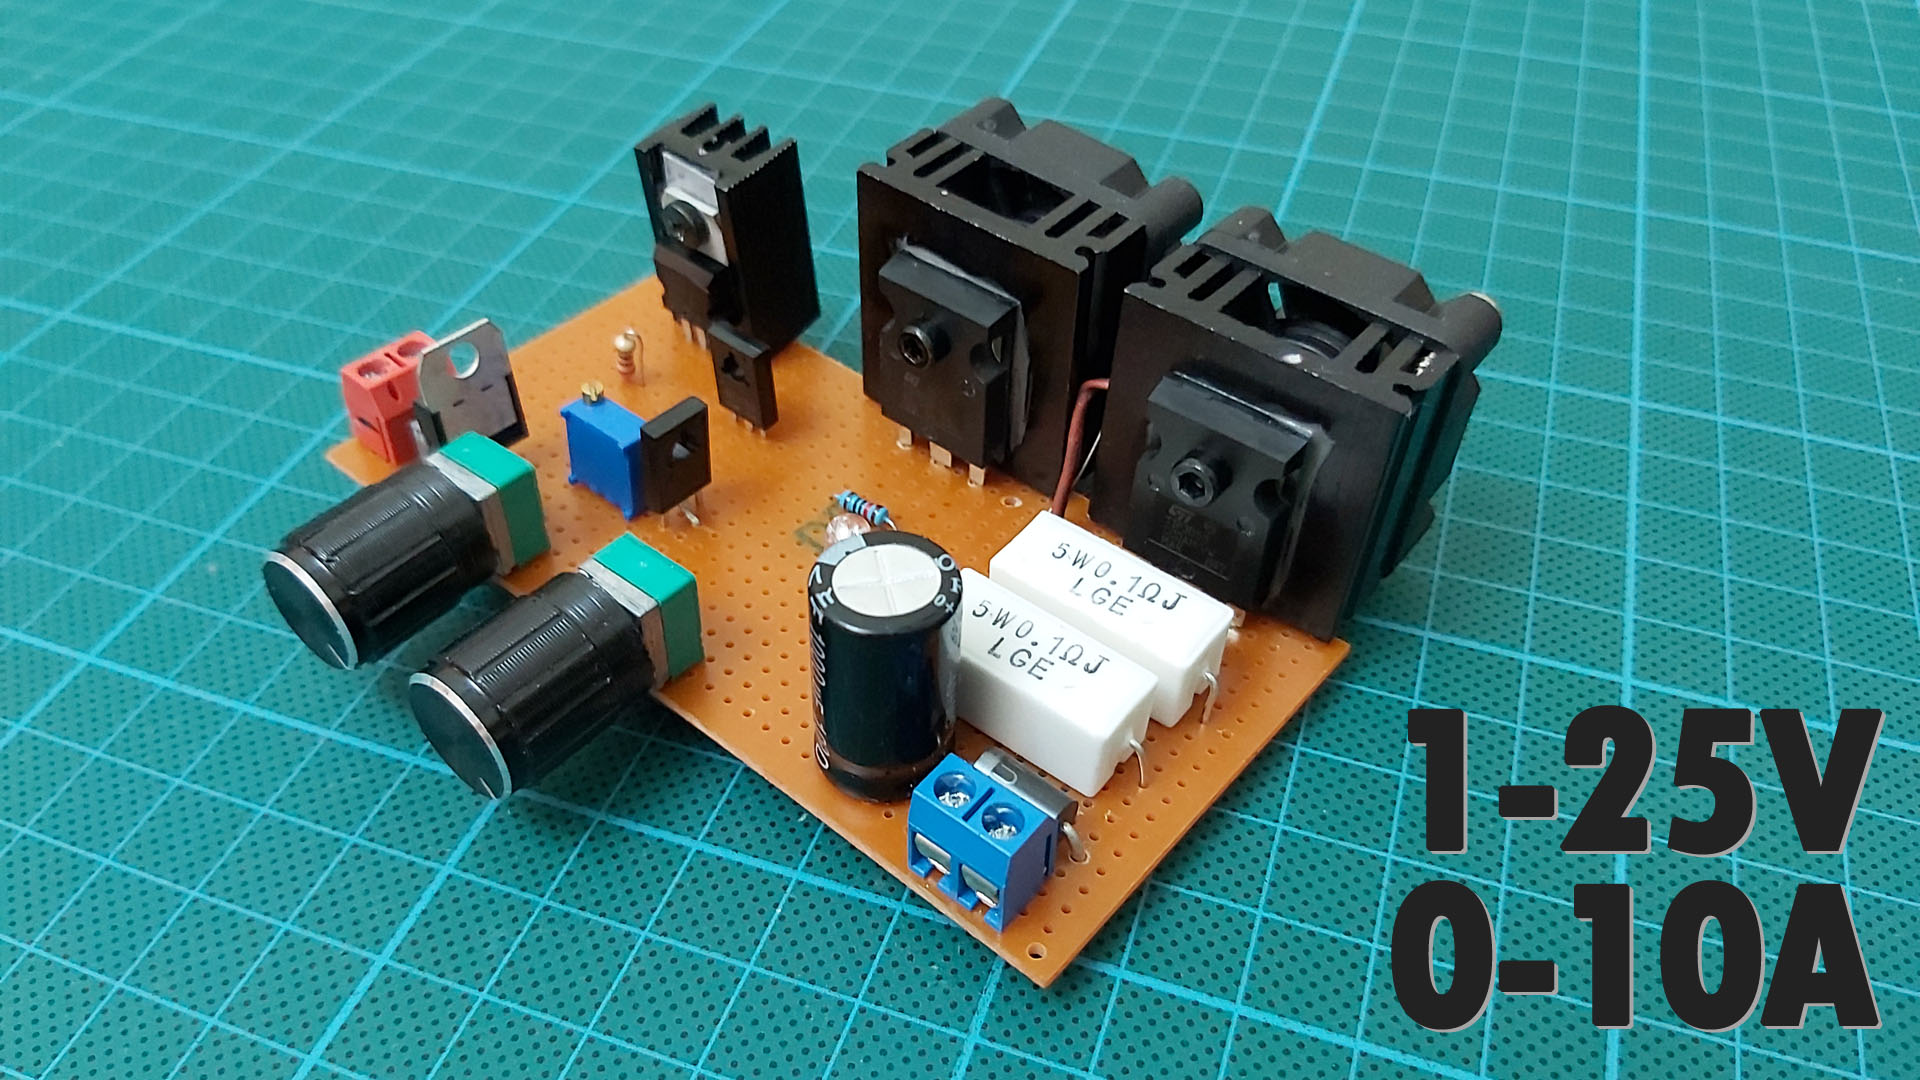 How To Make a Variable Power Supply. 1-25V & 0-10A Voltage & Current Adjustable Power Supply